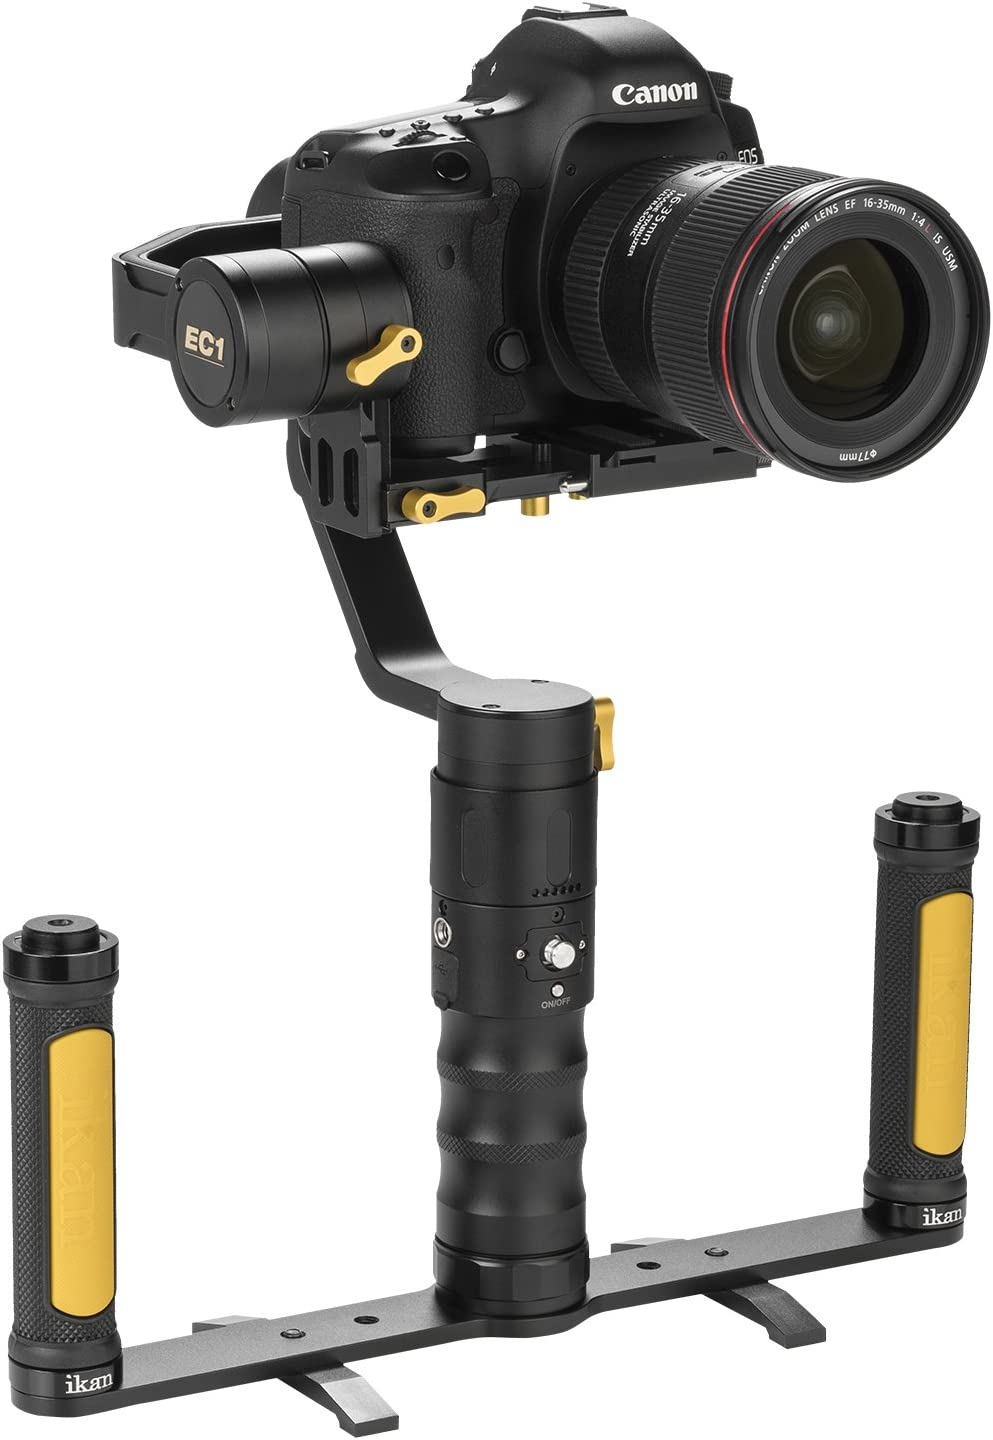 the best dslr stabilizers & gimbals